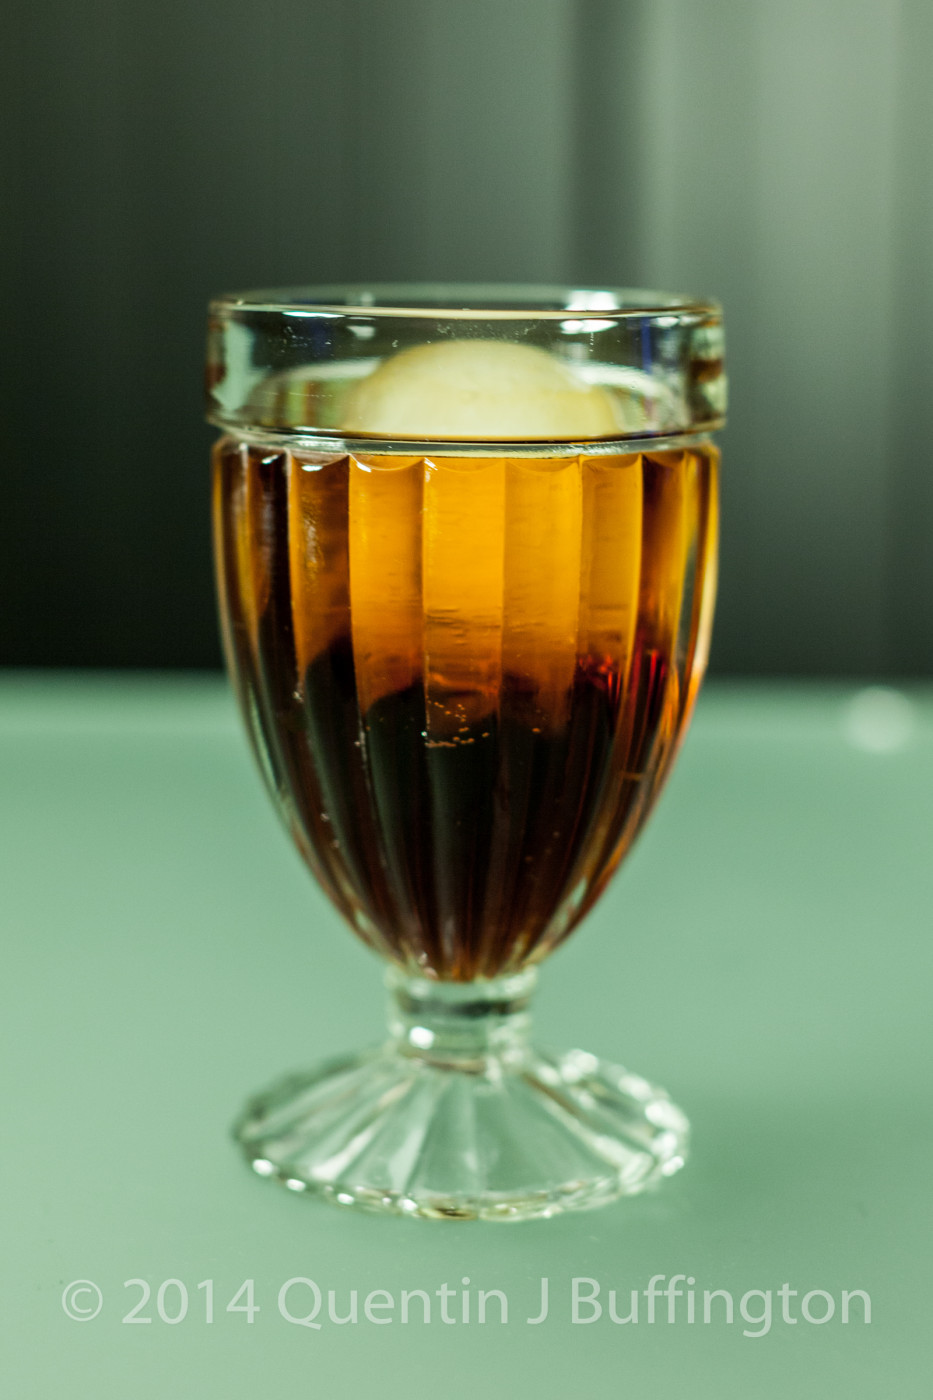 A cold glass of homemade root beer.